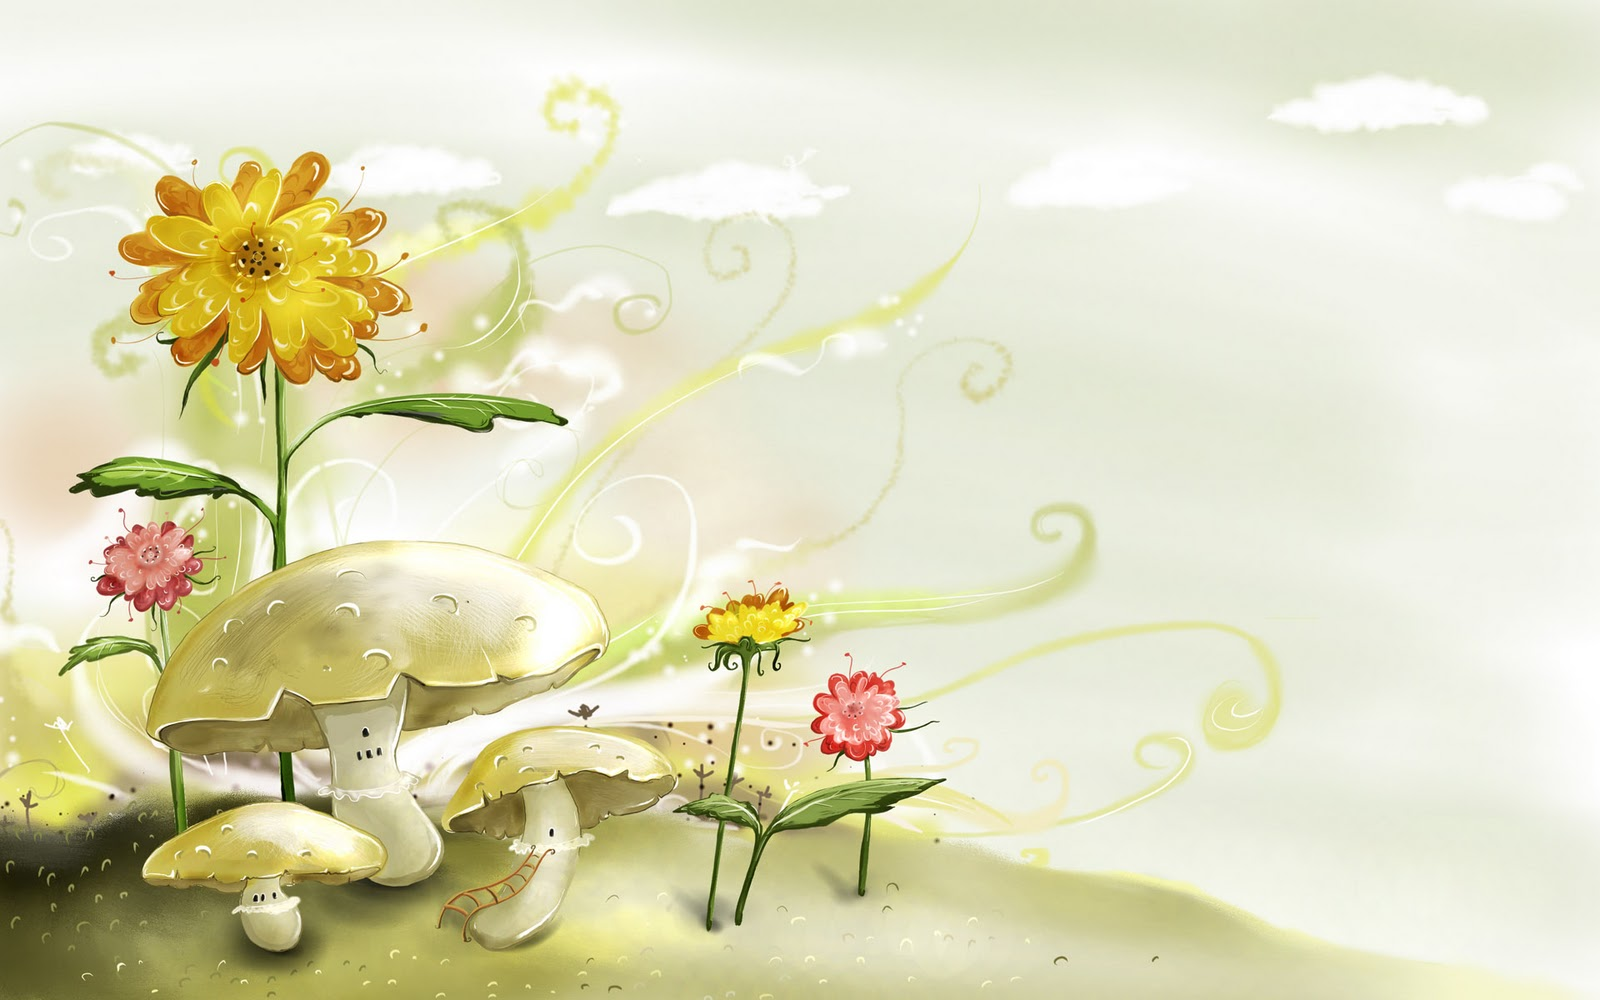 cute spring wallpaper cute spring wallpaper cute spring wallpaper cute 1600x1000